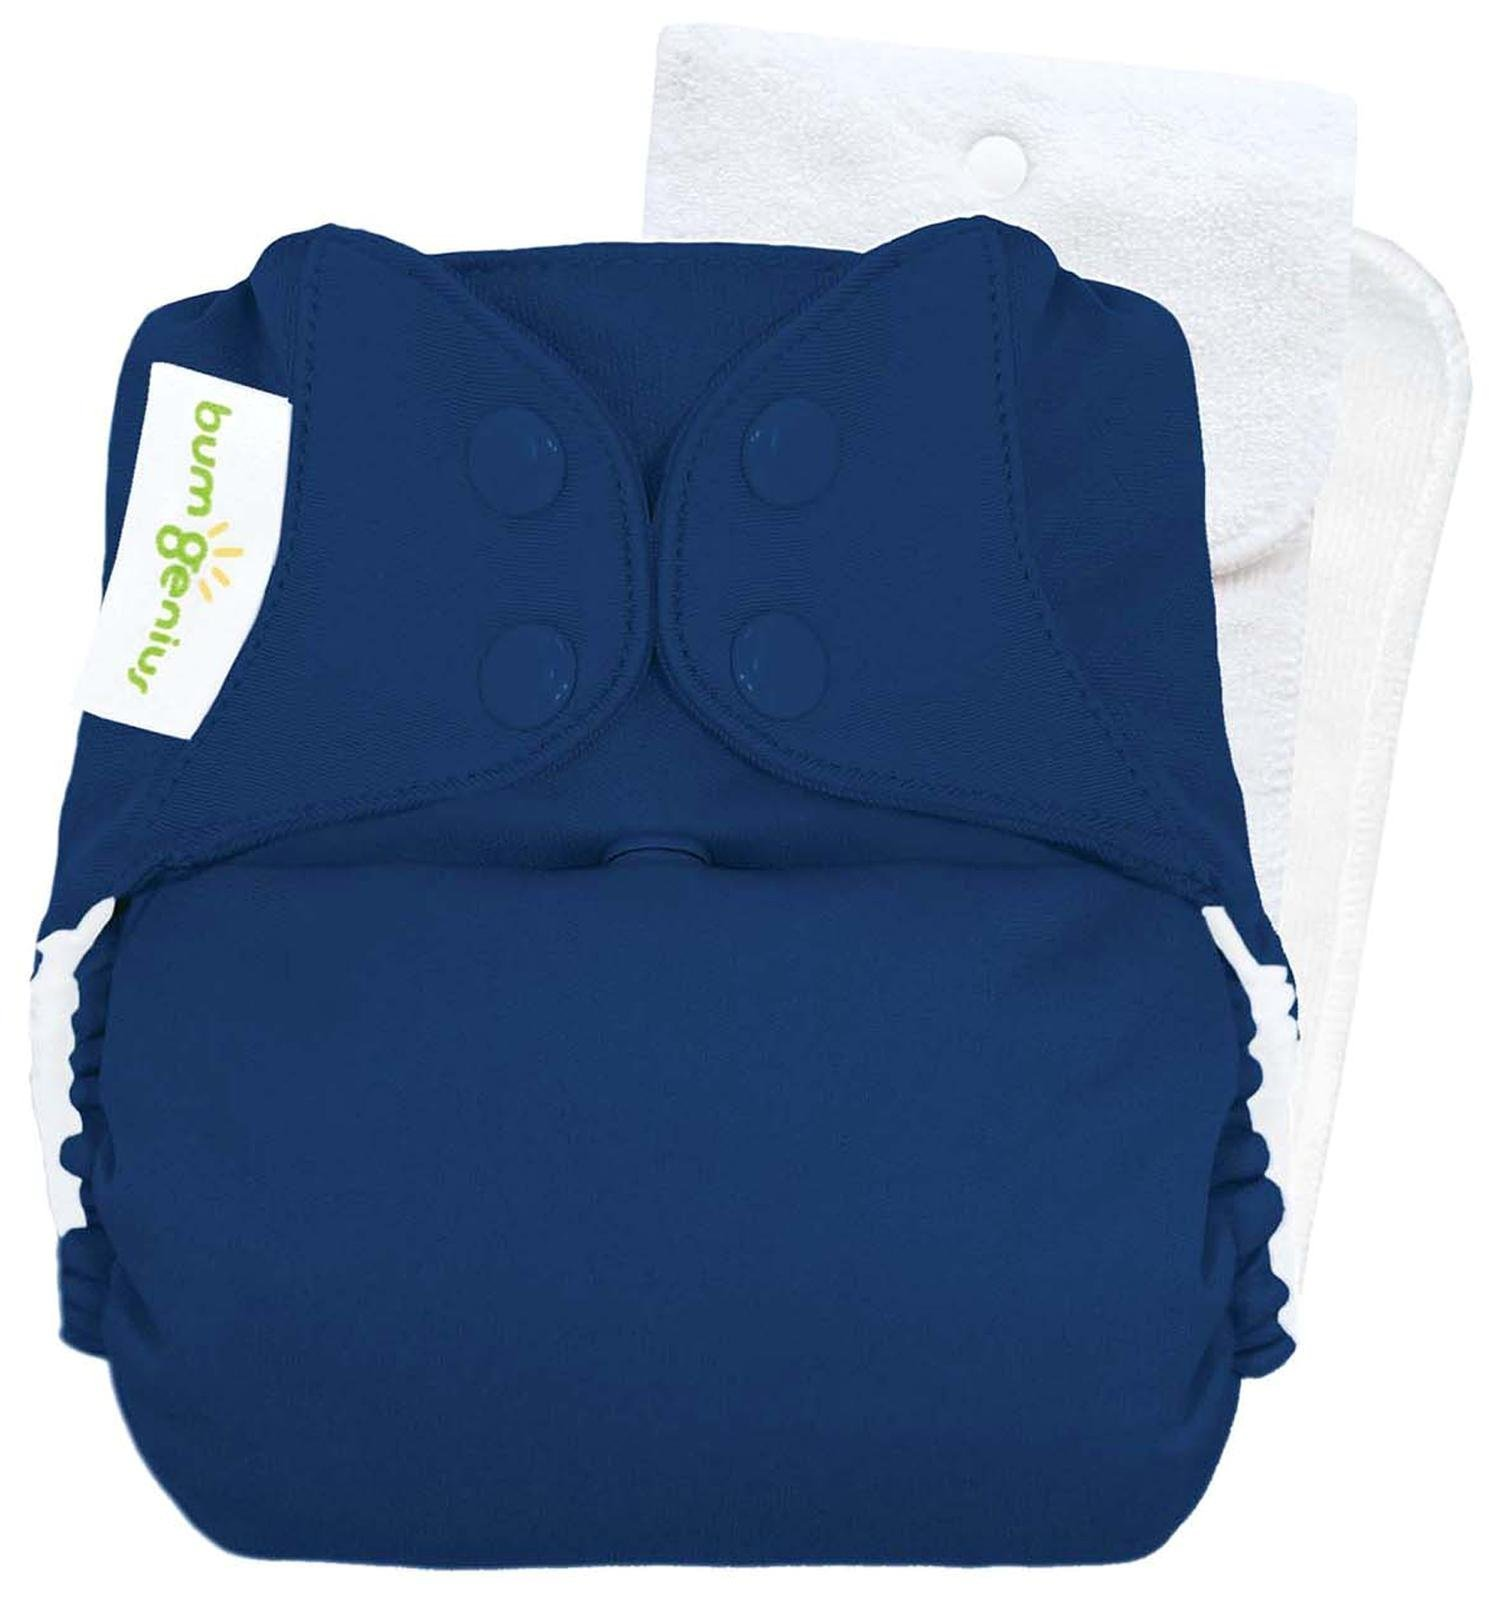 bumGenius Original One-Size Pocket-Style Cloth Diaper 5.0 (Stellar)